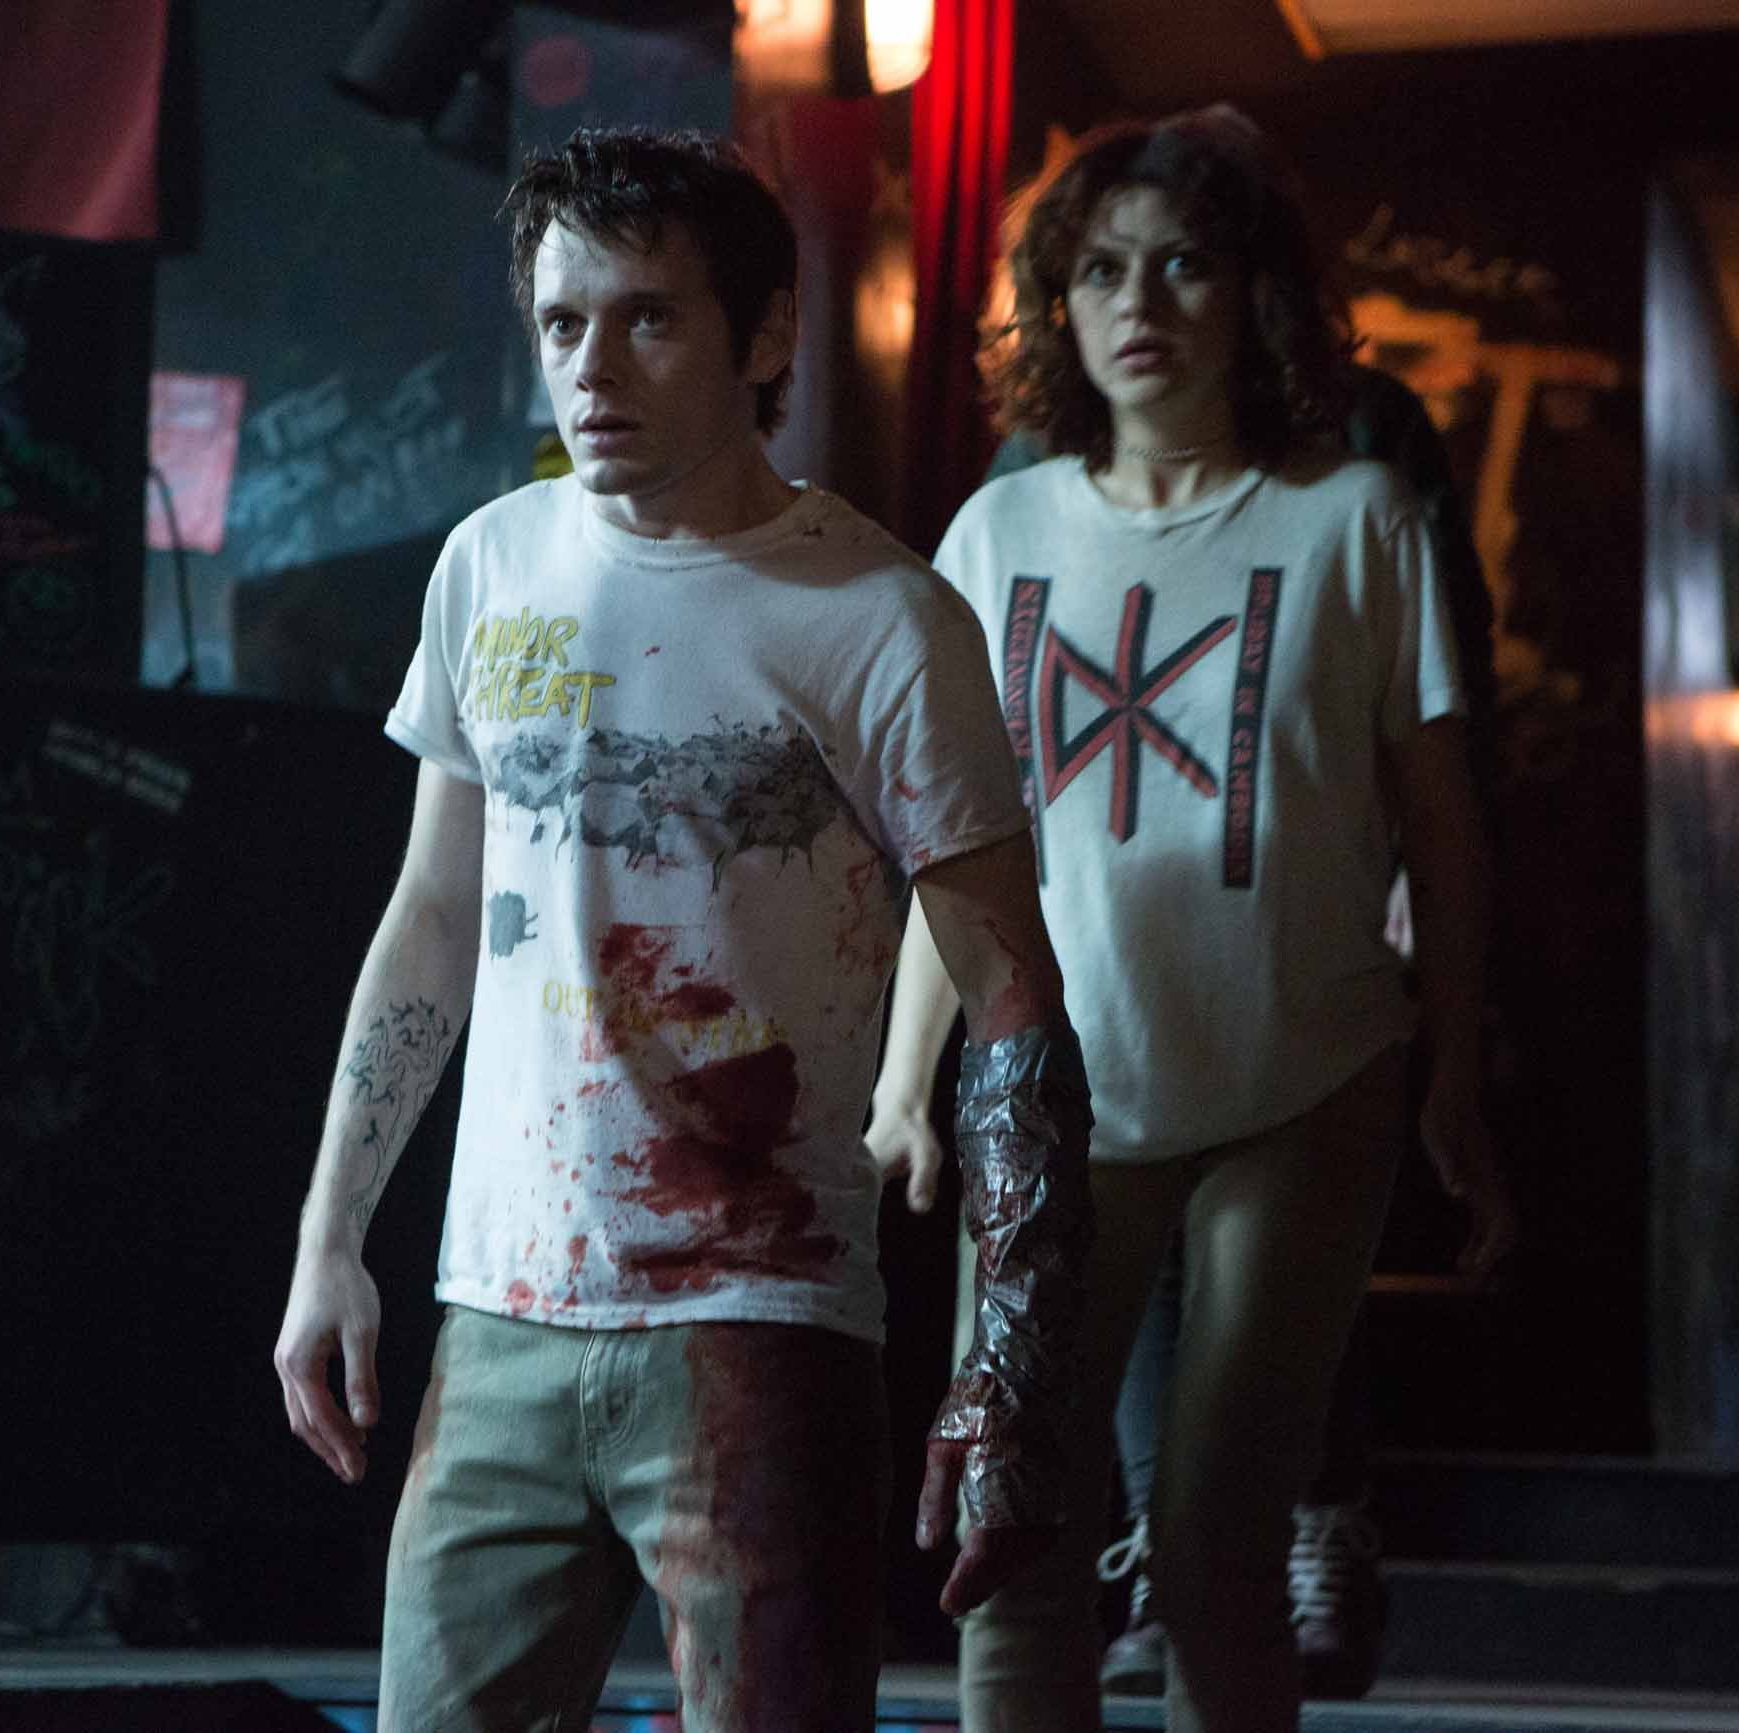 Green Room A punk band accepts a gig at a backwoods Maryland bar, only to discover the clientele is heavy on the neo-Nazis. When they witness a murder, they hold up in the back room to fight off the viscous and violent group that needs to cover up their crime.